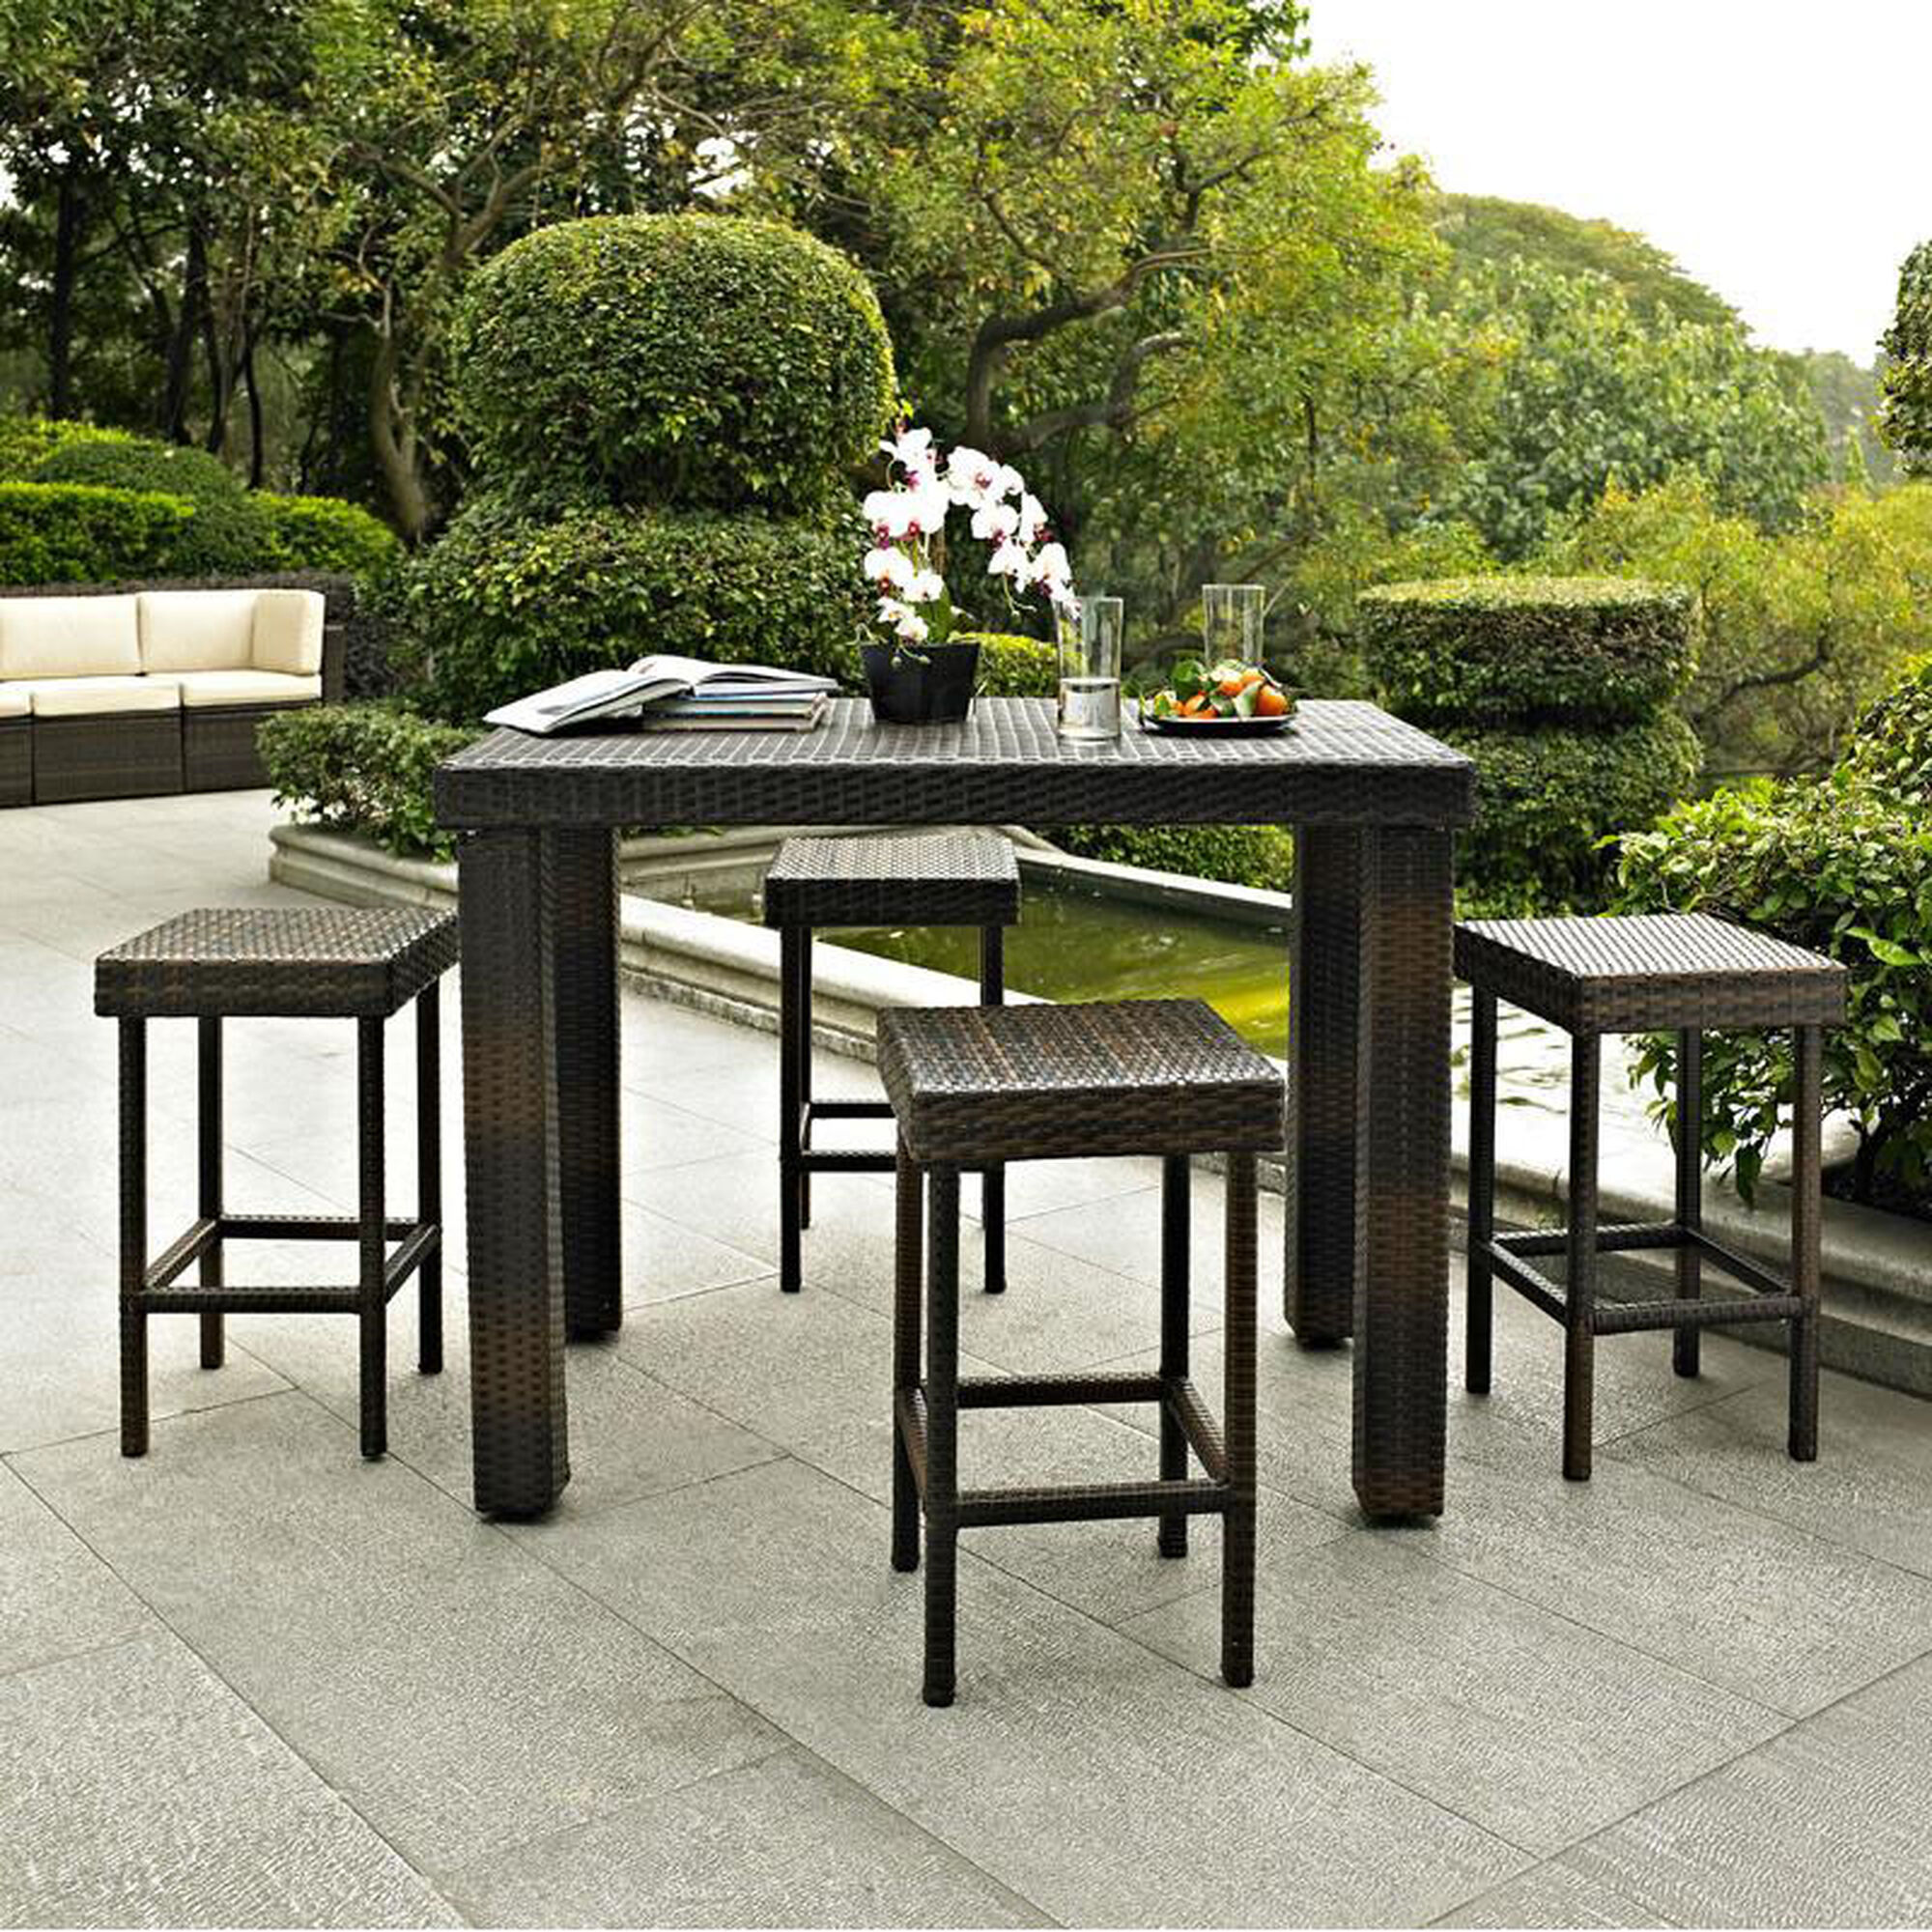 Crosley Palm Harbor 5 Piece Outdoor Wicker High Dining Set Table